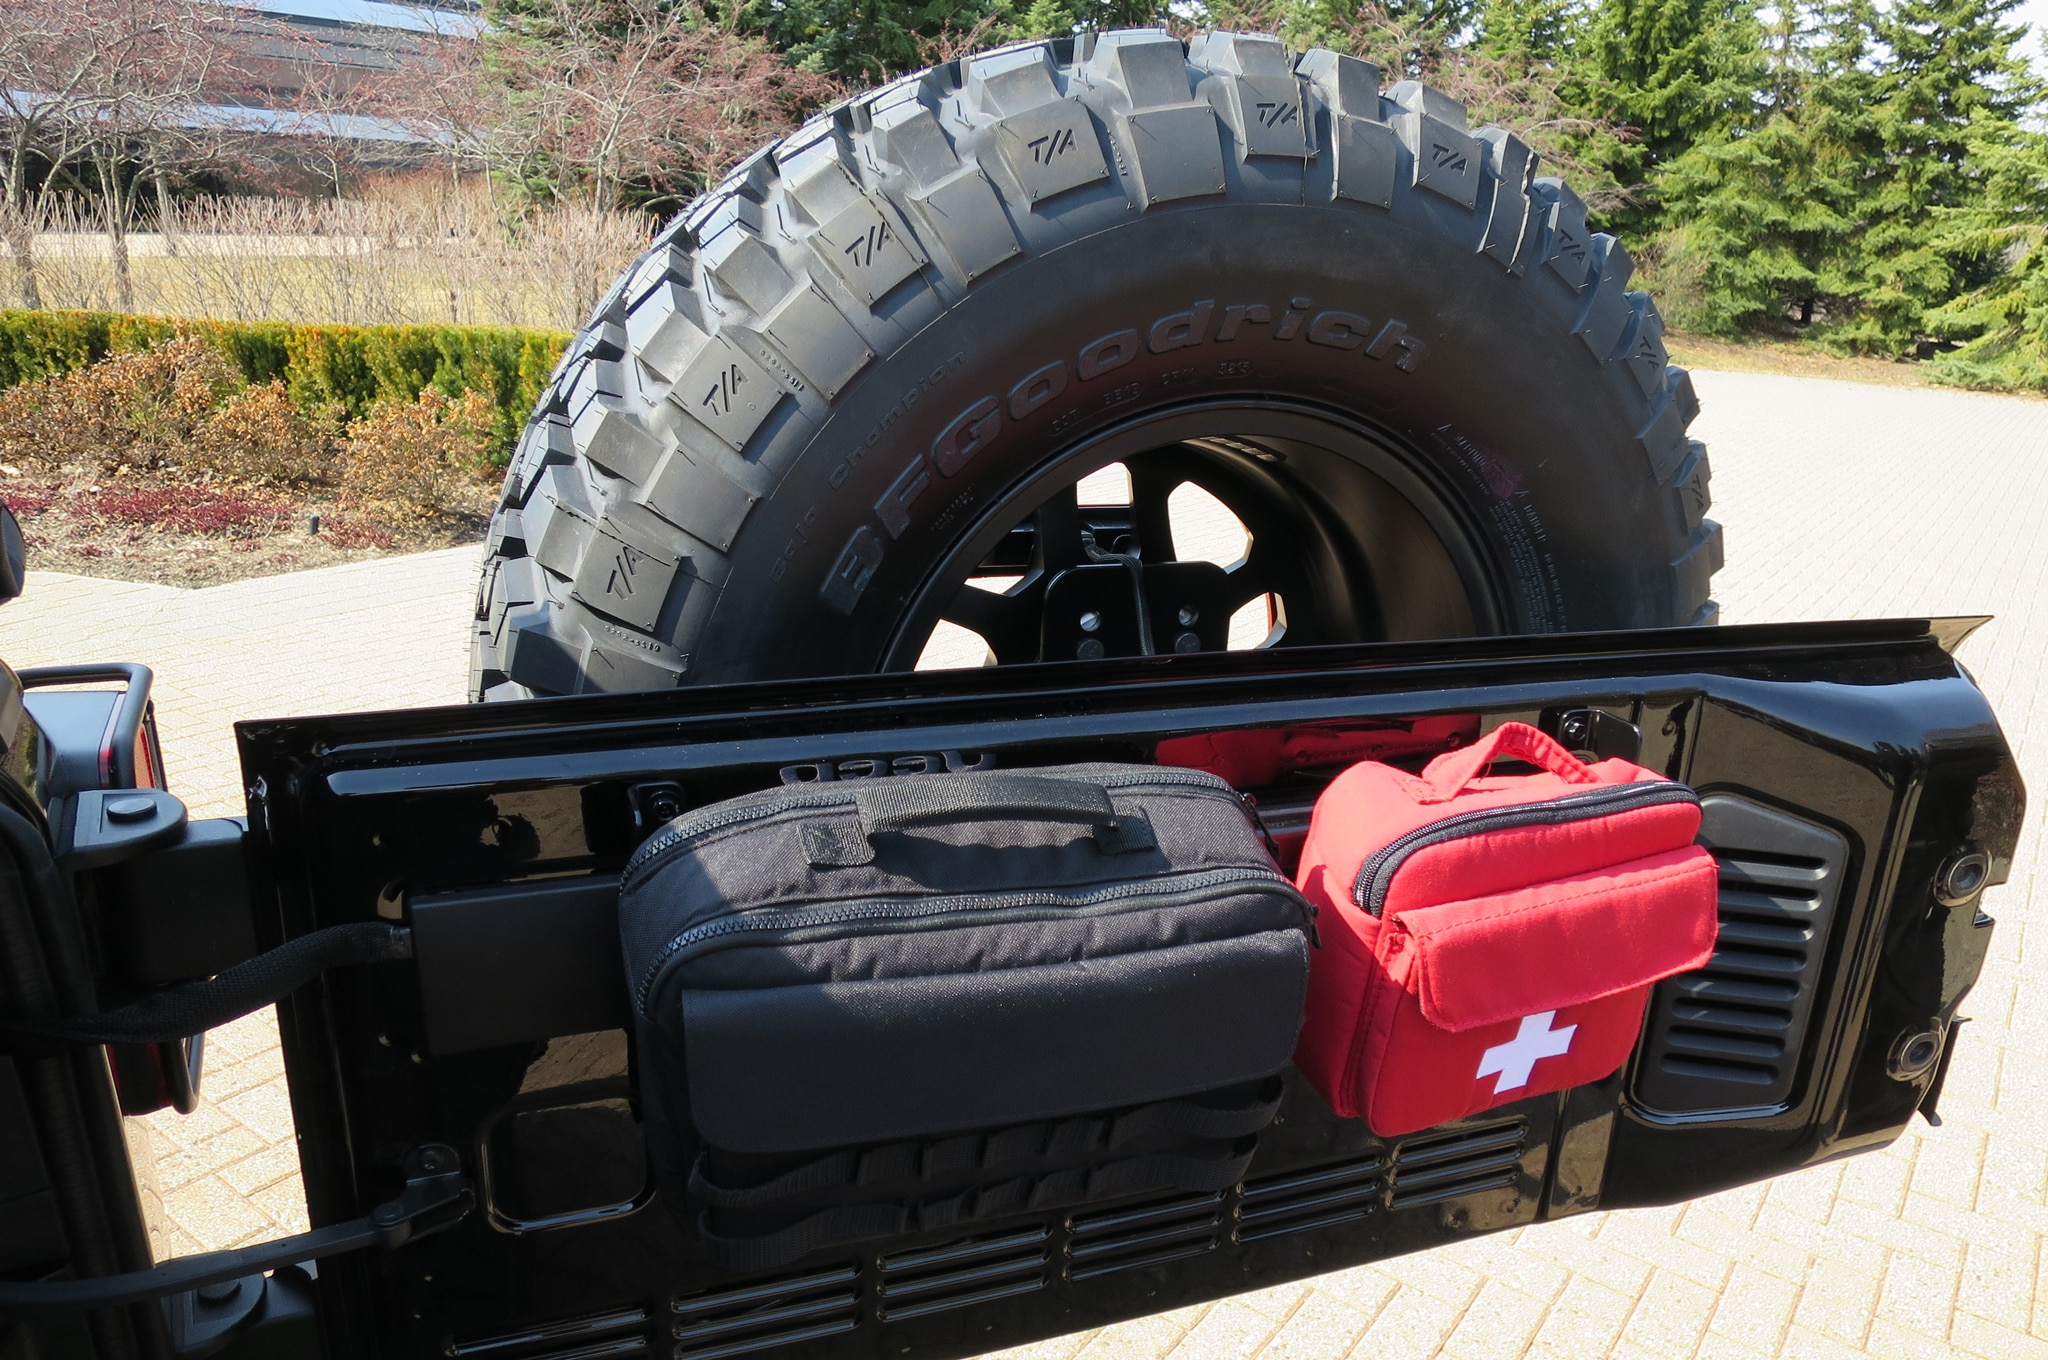 Jeep Wrangler Level Red Concept first aid kit 02